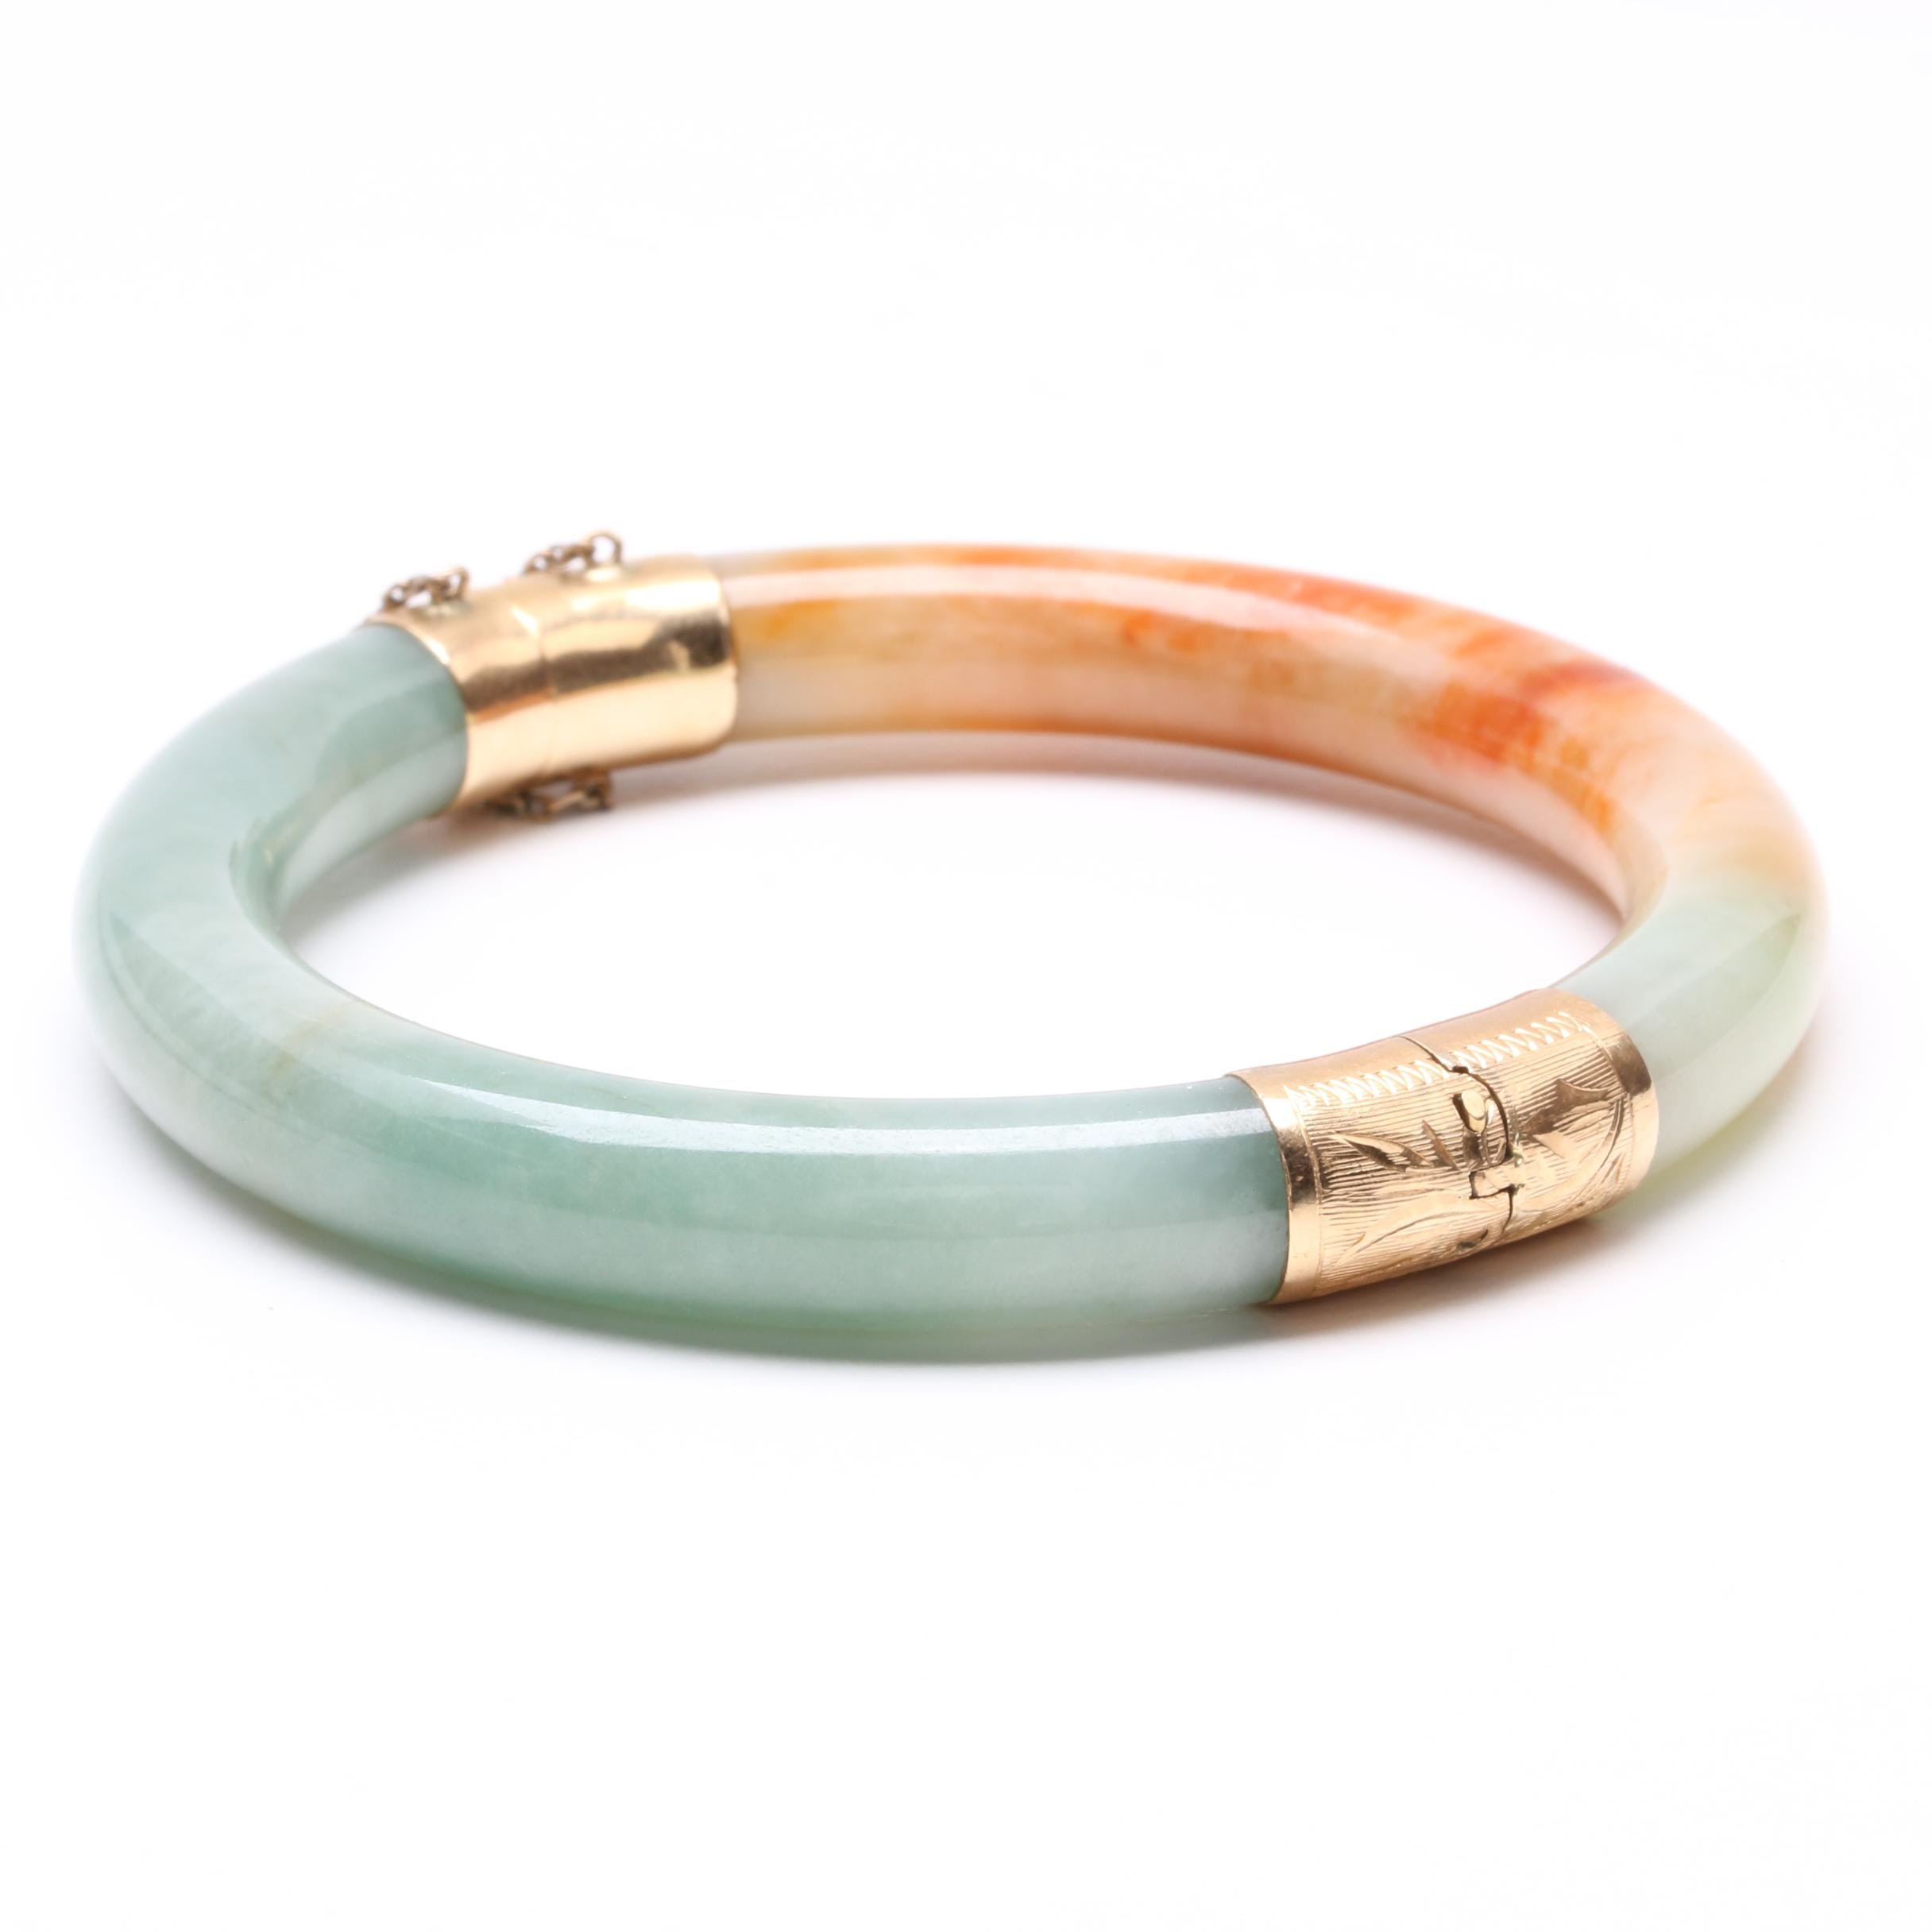 14K Yellow Gold Carved Jadeite Bangle